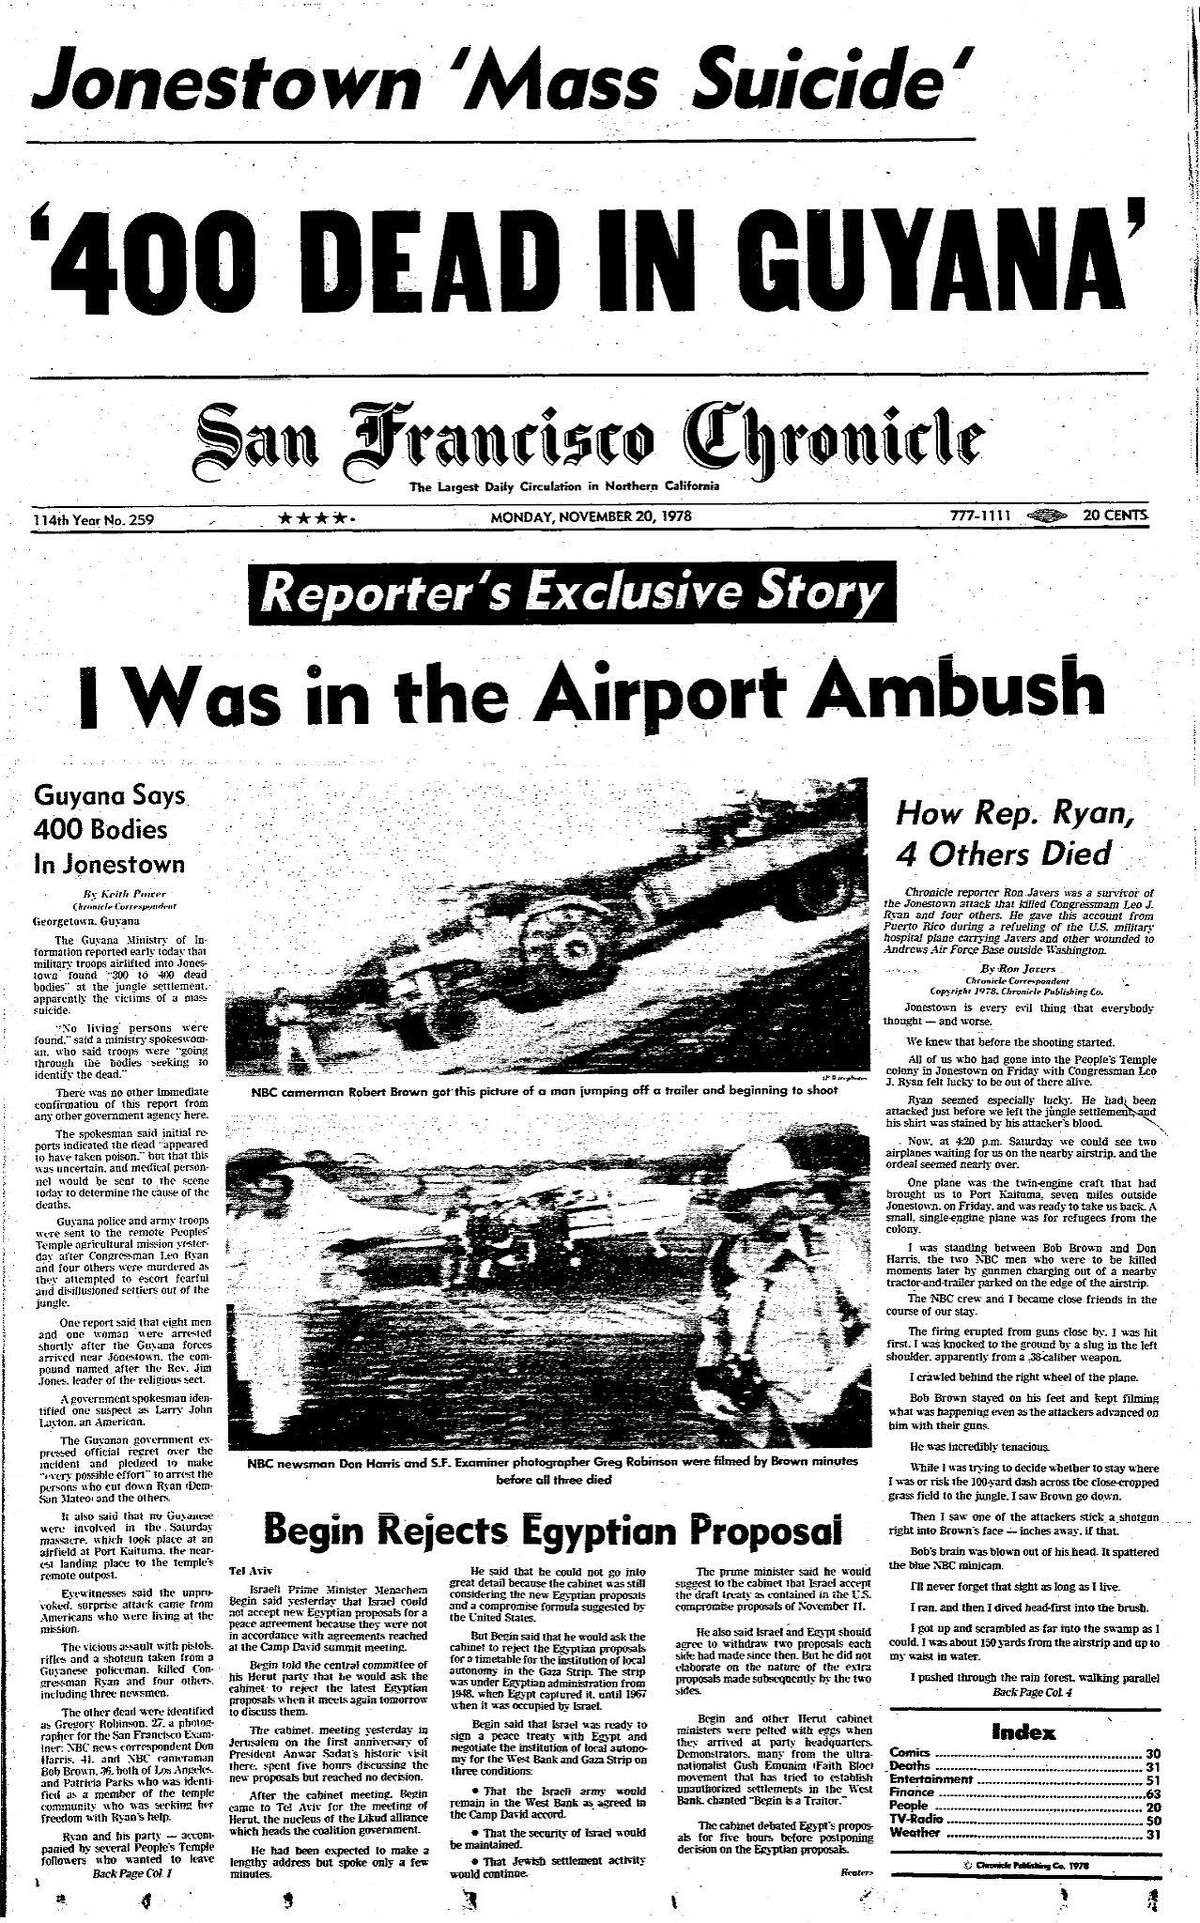 Historic Chronicle Front Page November 20, 1978 Hundreds dead as Jonestown Mass Suicide follows the murder of Congressman Leo J. Ryan and several journalists Reverend Jim Jones would coax his People's Temple followers into a mass suicide Chron365, Chroncover